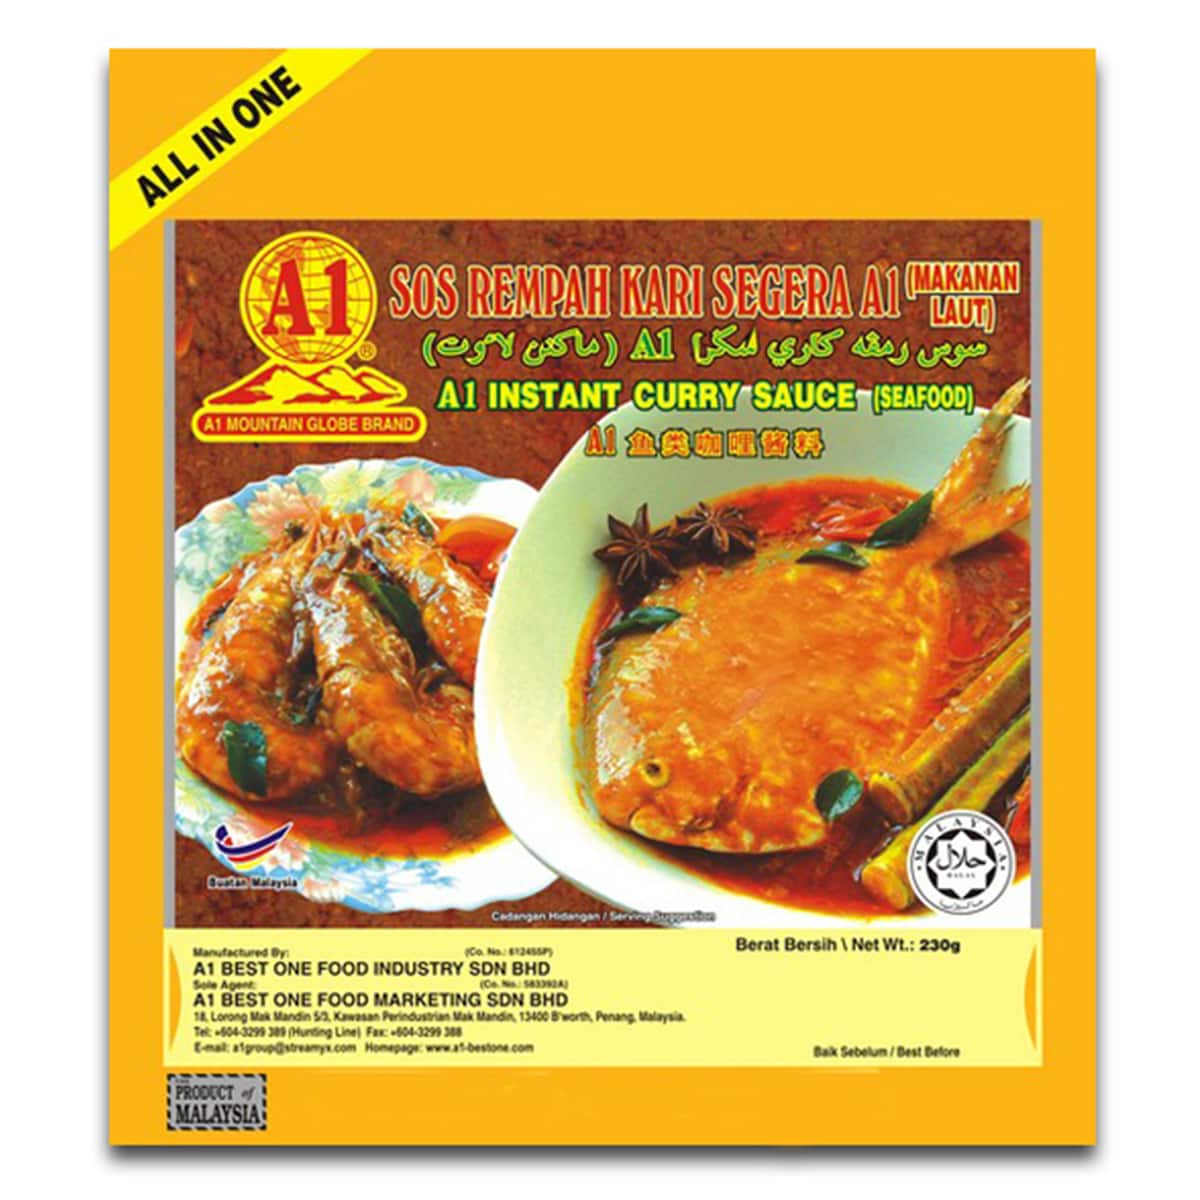 Buy A1 Mountain Globe Brand Instant Curry Sauce (Seafood) - 230 gm